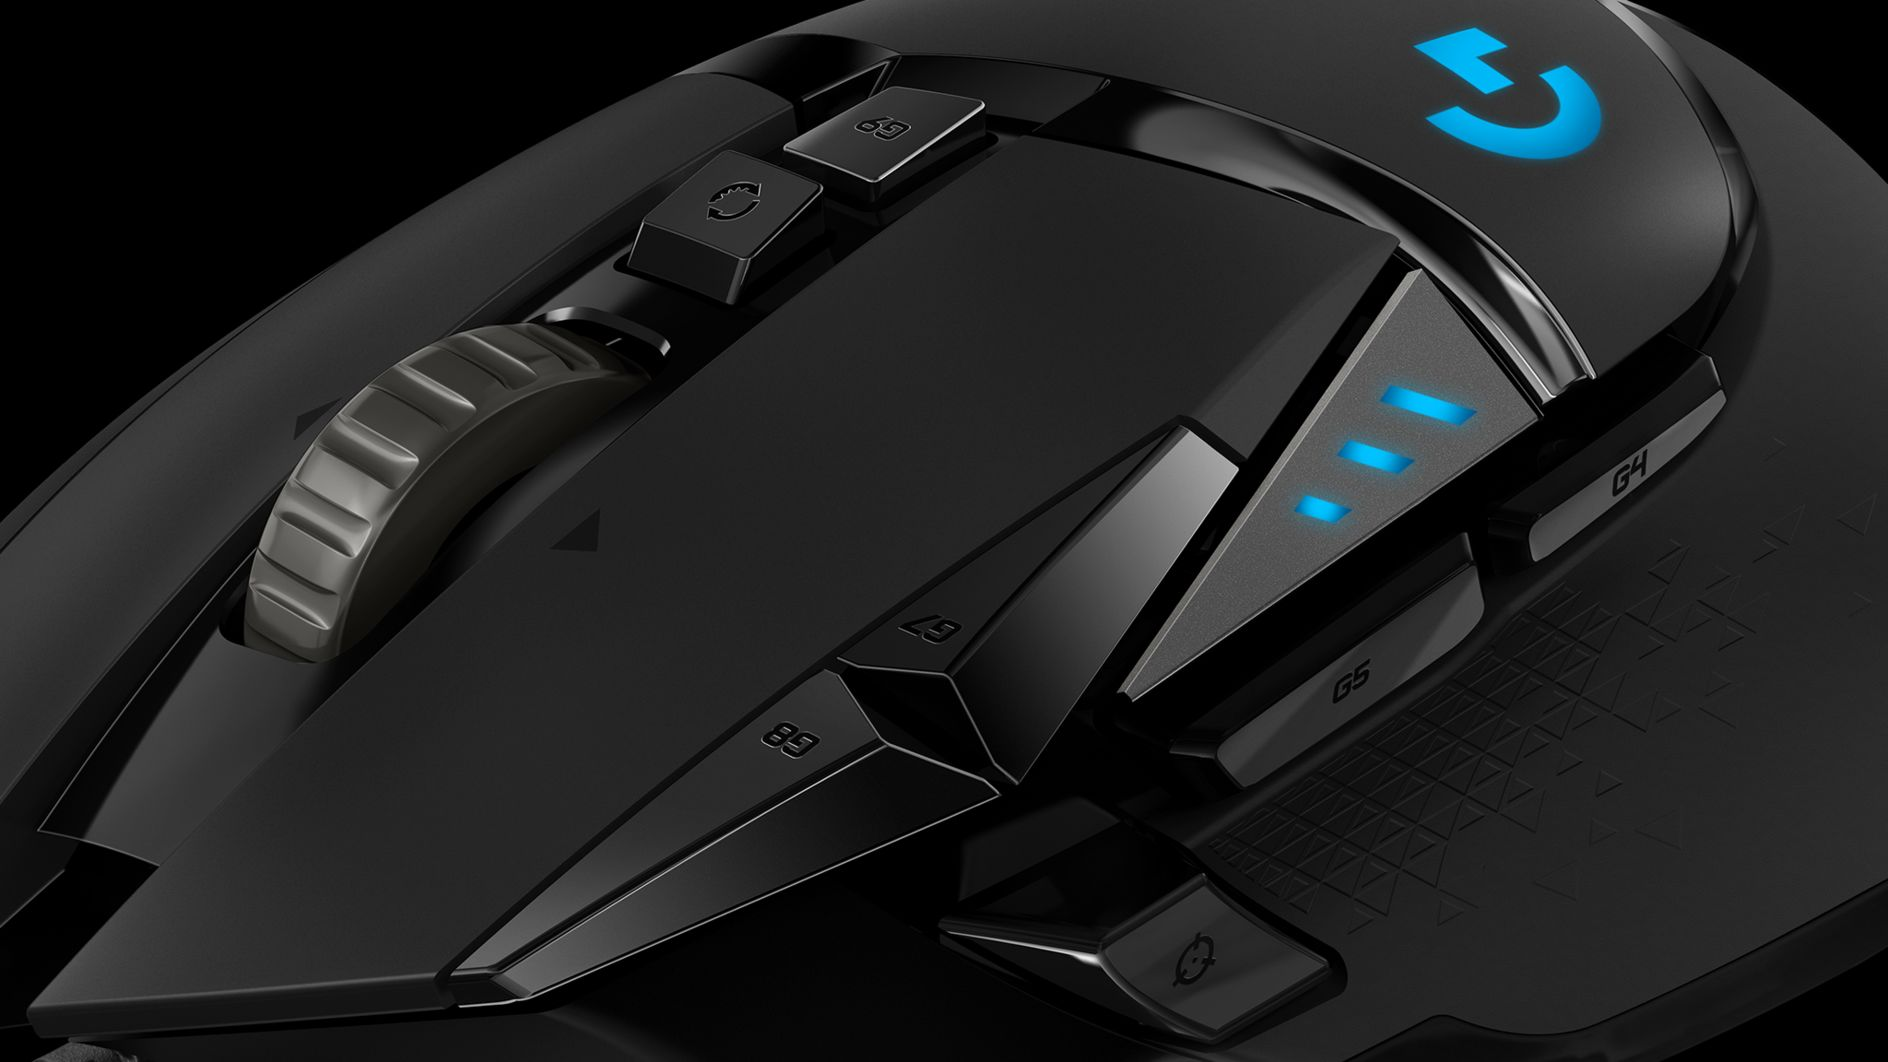 772f22055d6 REVIEW: Level Up Gaming with Logitech G502 HERO Mouse - SmartHouse